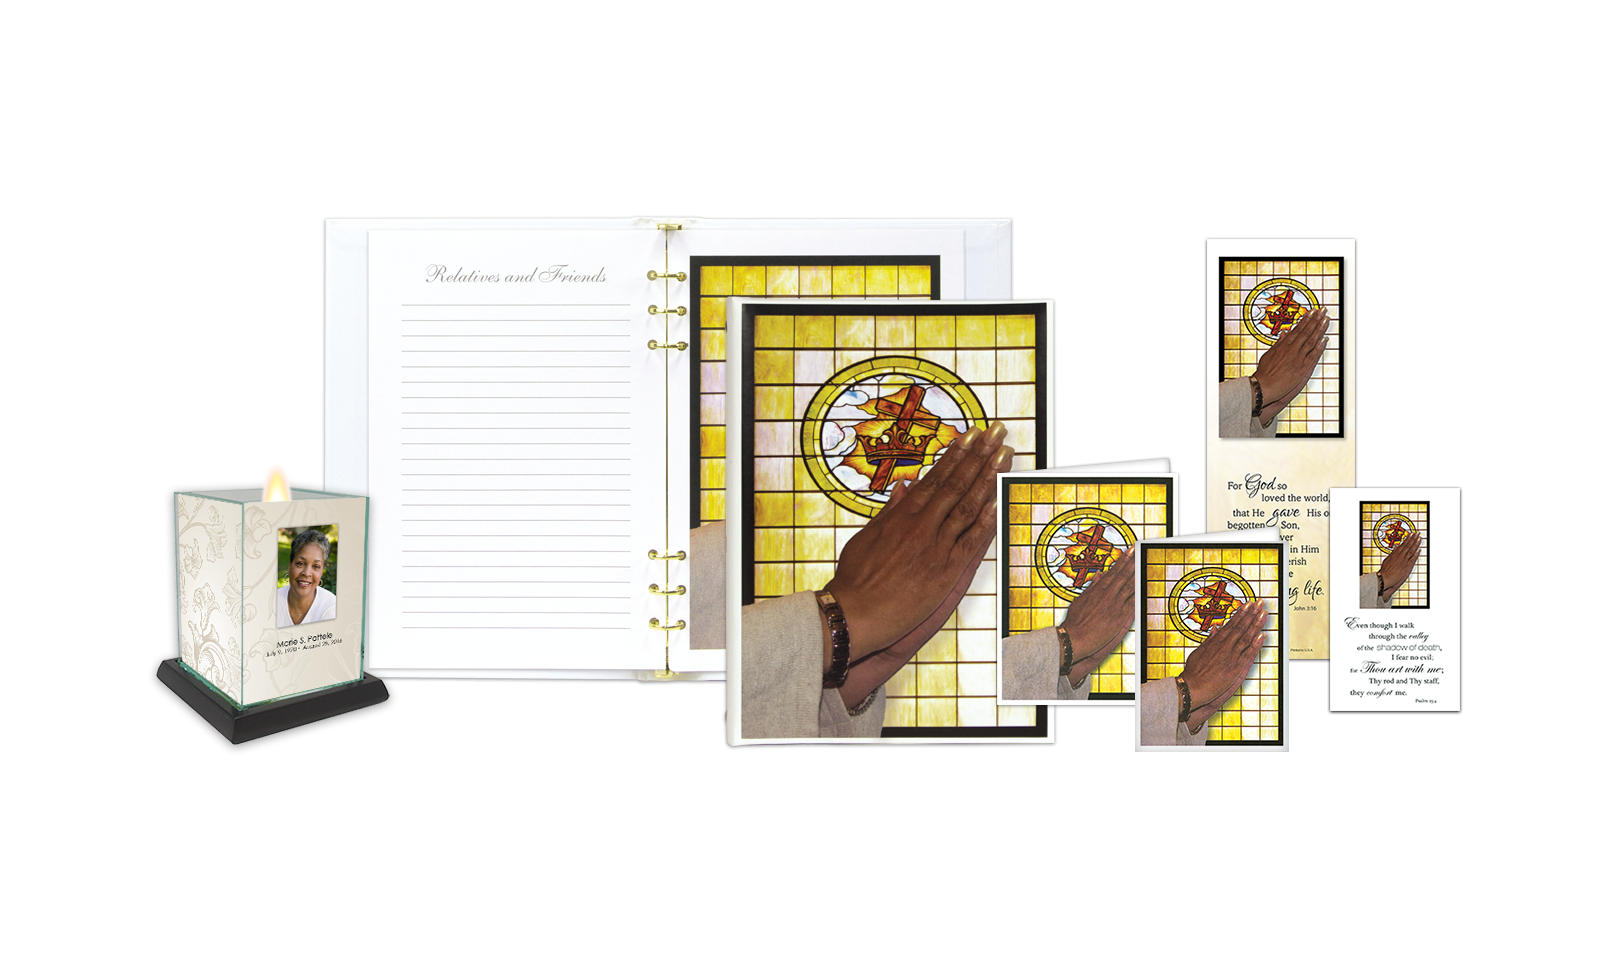 ROL Praying Hands - Female with Stained Glass Window Series 329 IC